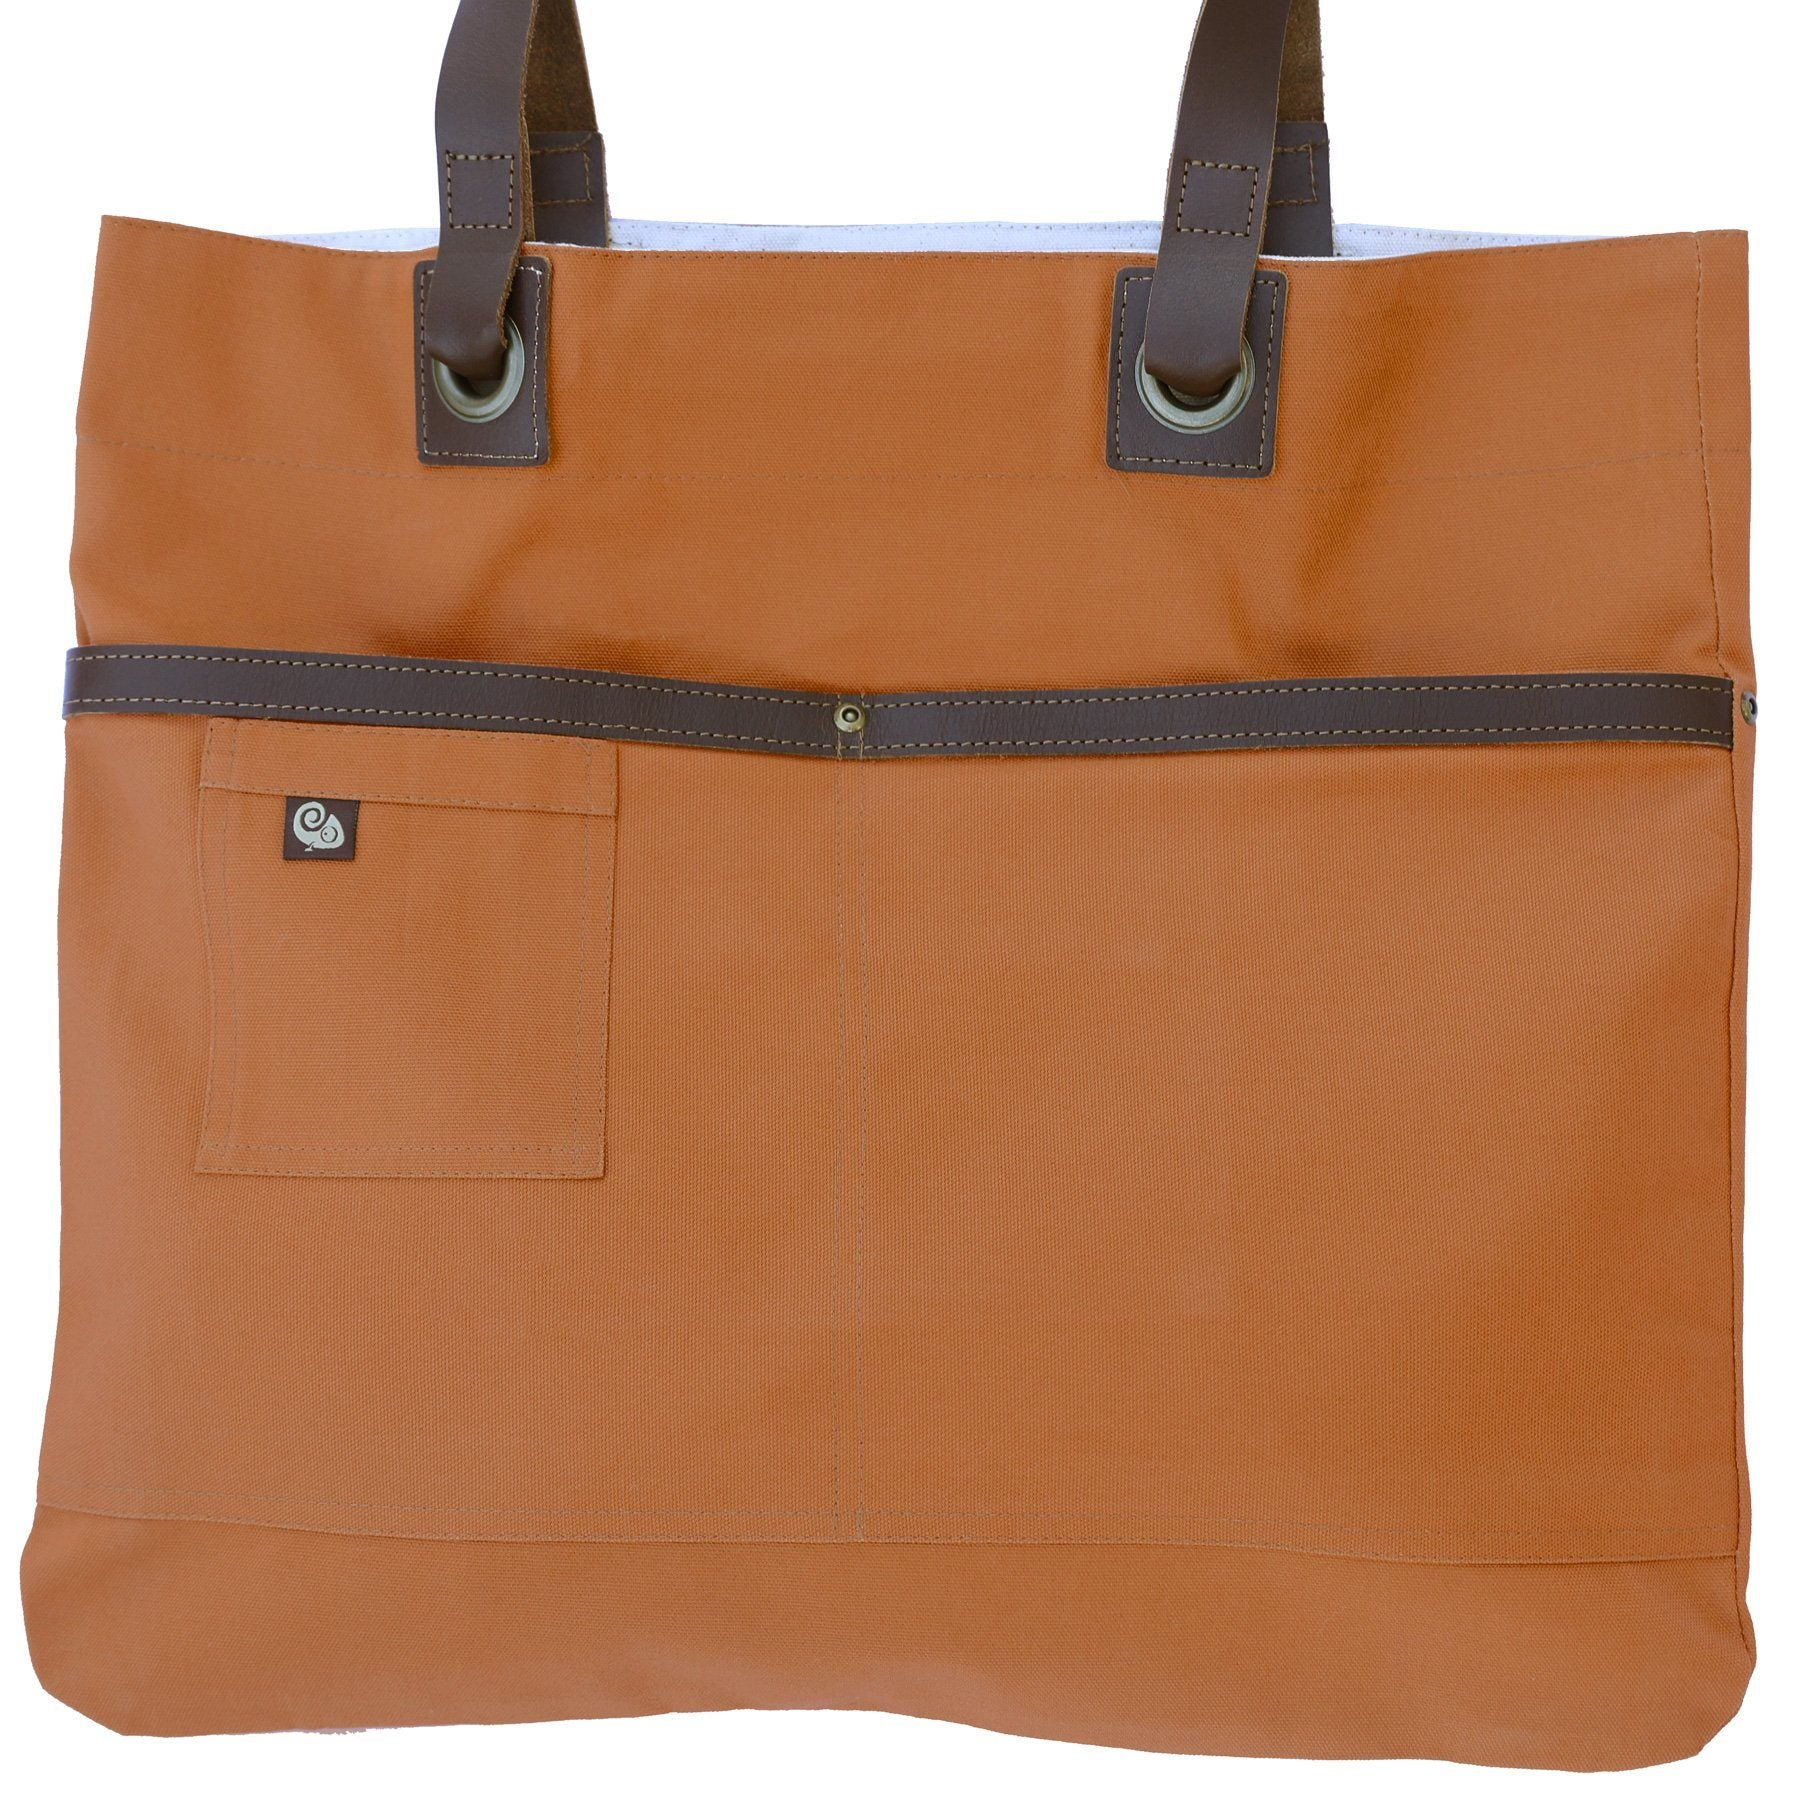 Koda Austell Canvas Bag (Sweet Potato)